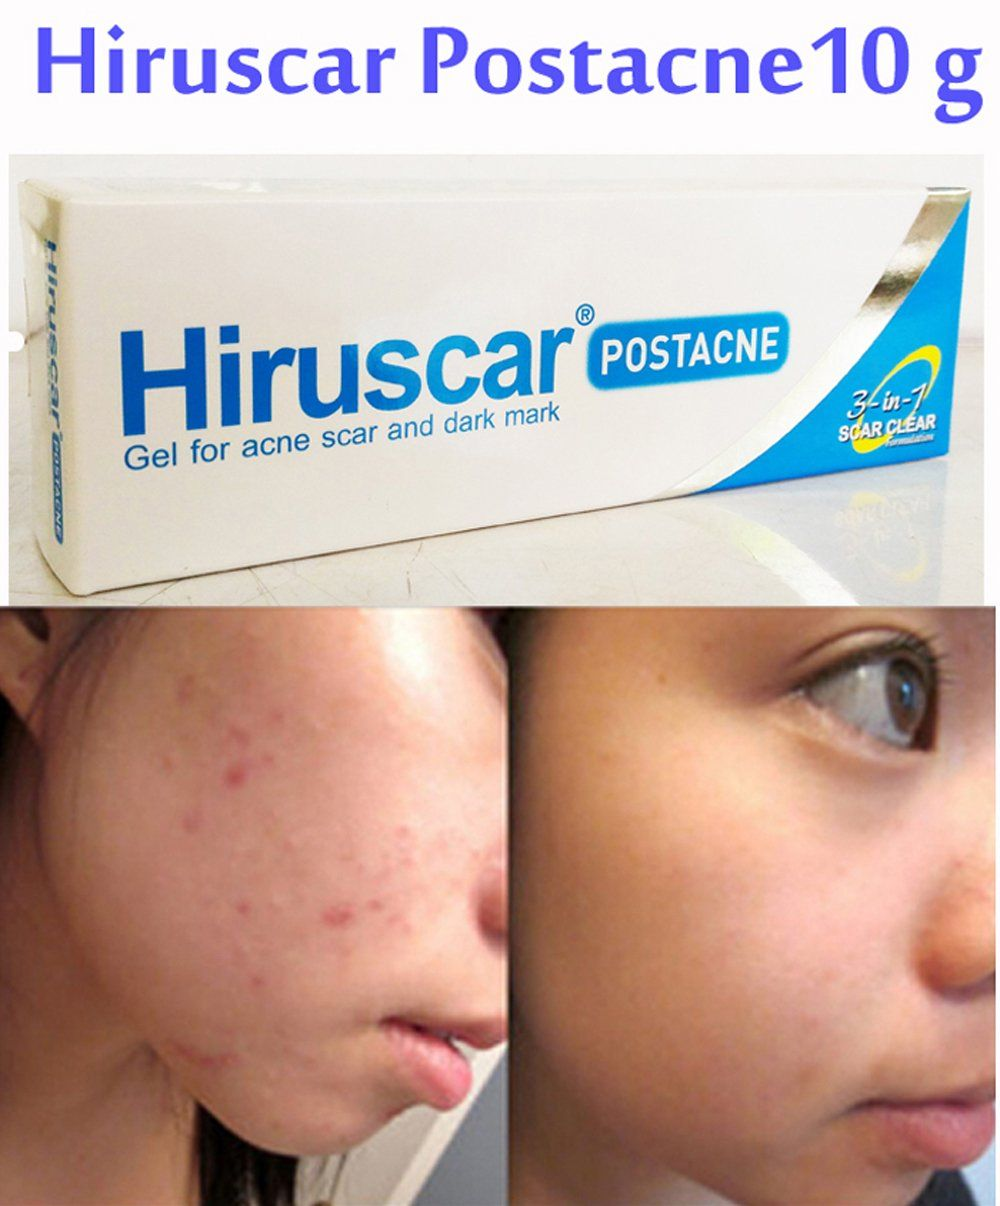 Acne Treatment Hiruscar Post Gel 10 G Dark Mark Relief Scar Clear 3 In 1 Smooth Skin Learn More By Visiting The Photo Link